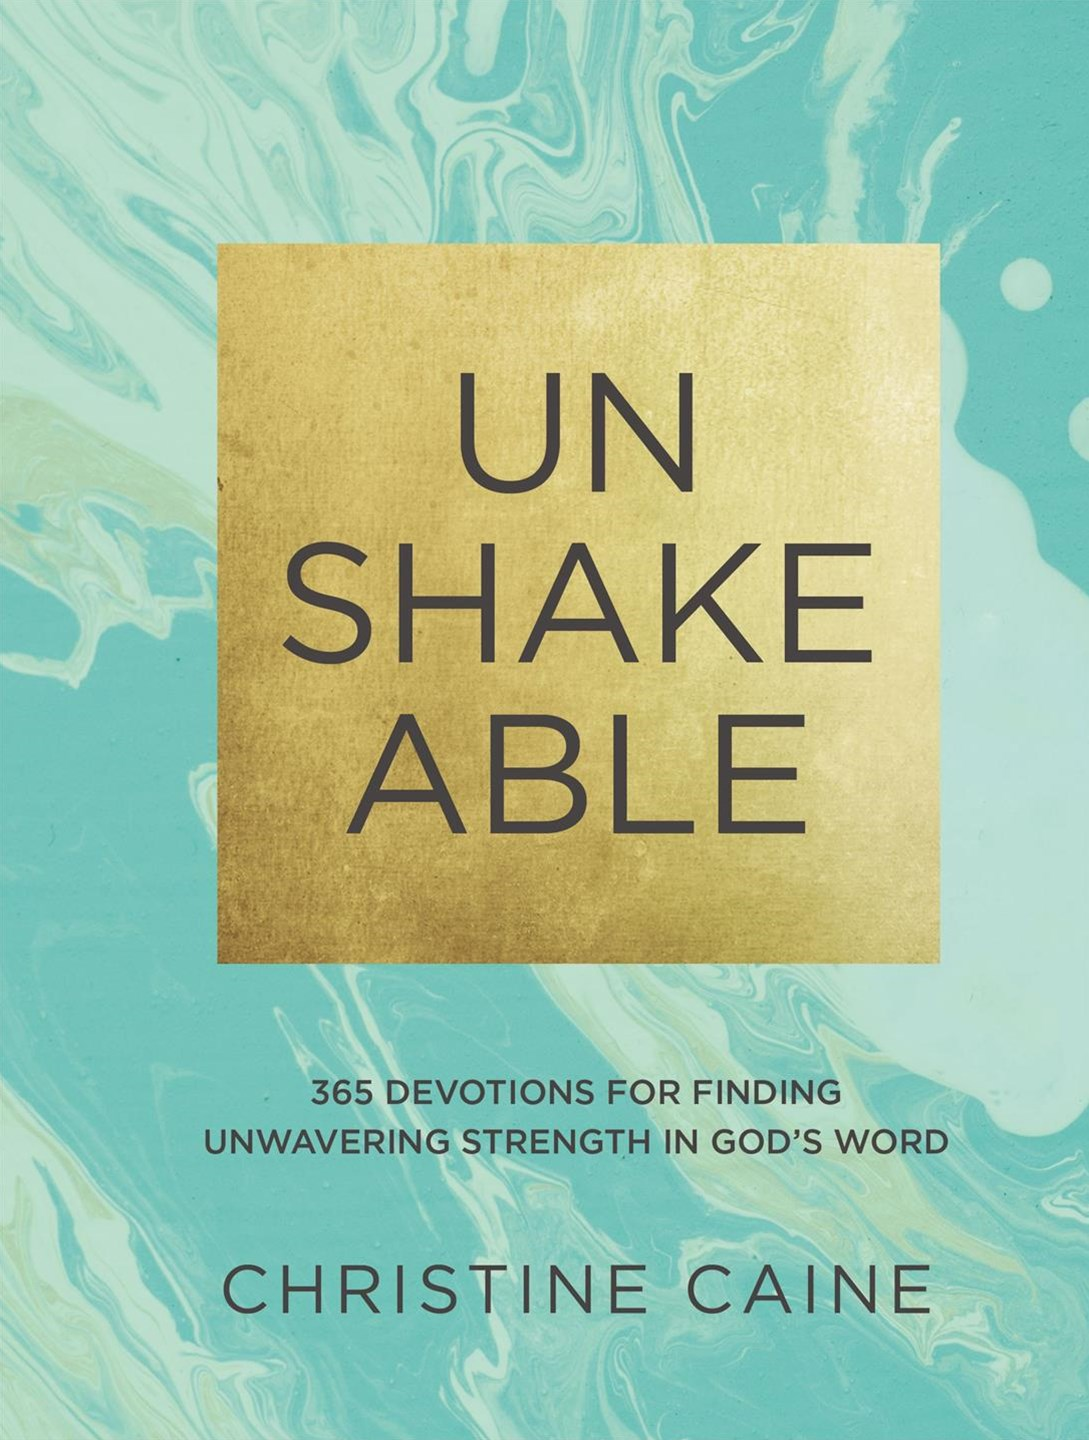 Unshakeable: 365 Devotions For Finding Unwavering Strength In God's Word